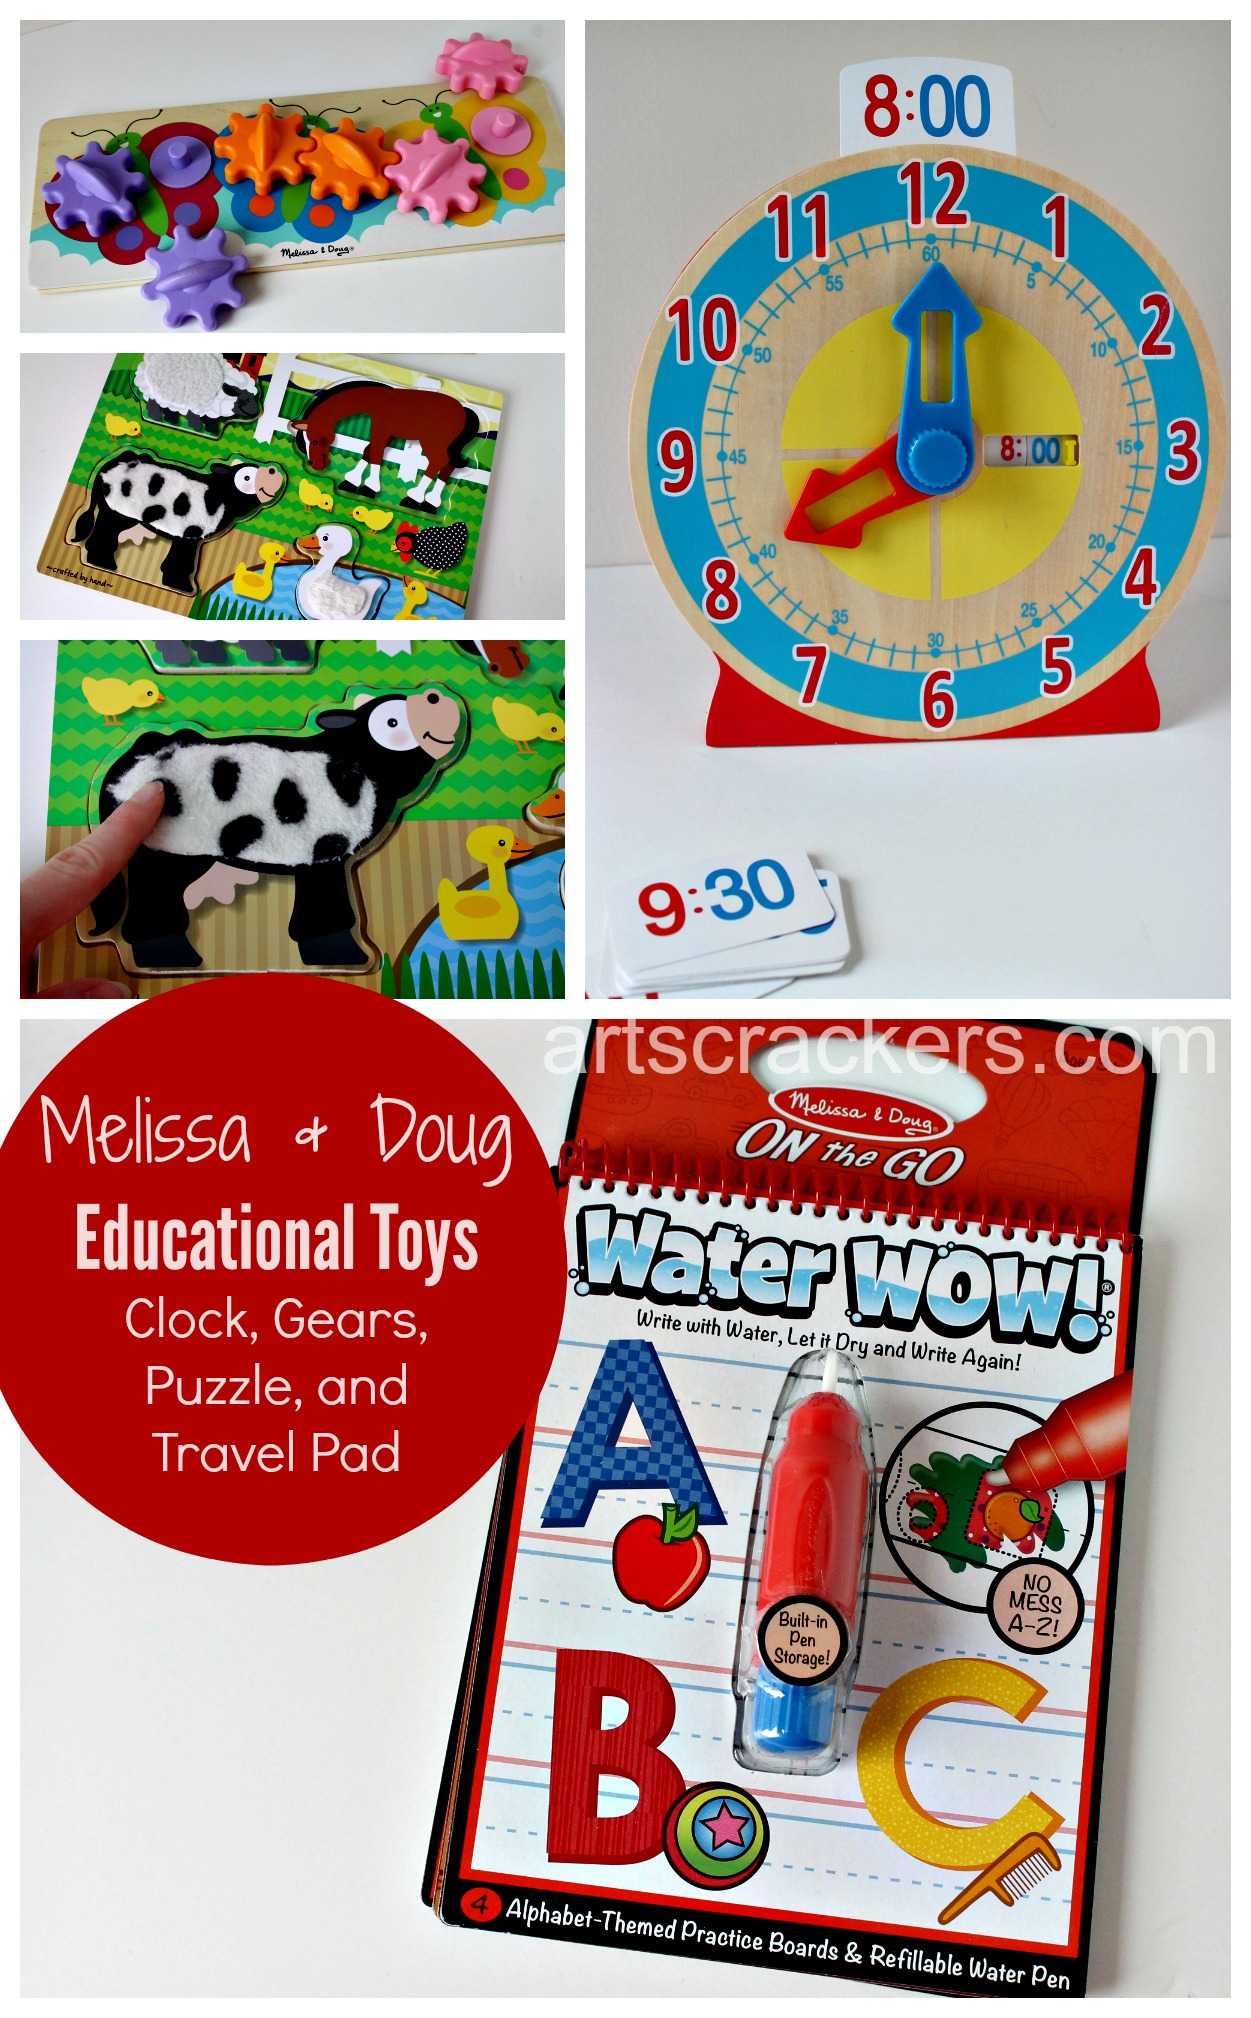 Melissa and Doug Educational Toys Clock, Gears, Puzzle, and Travel Pad. Click the picture to read the review.